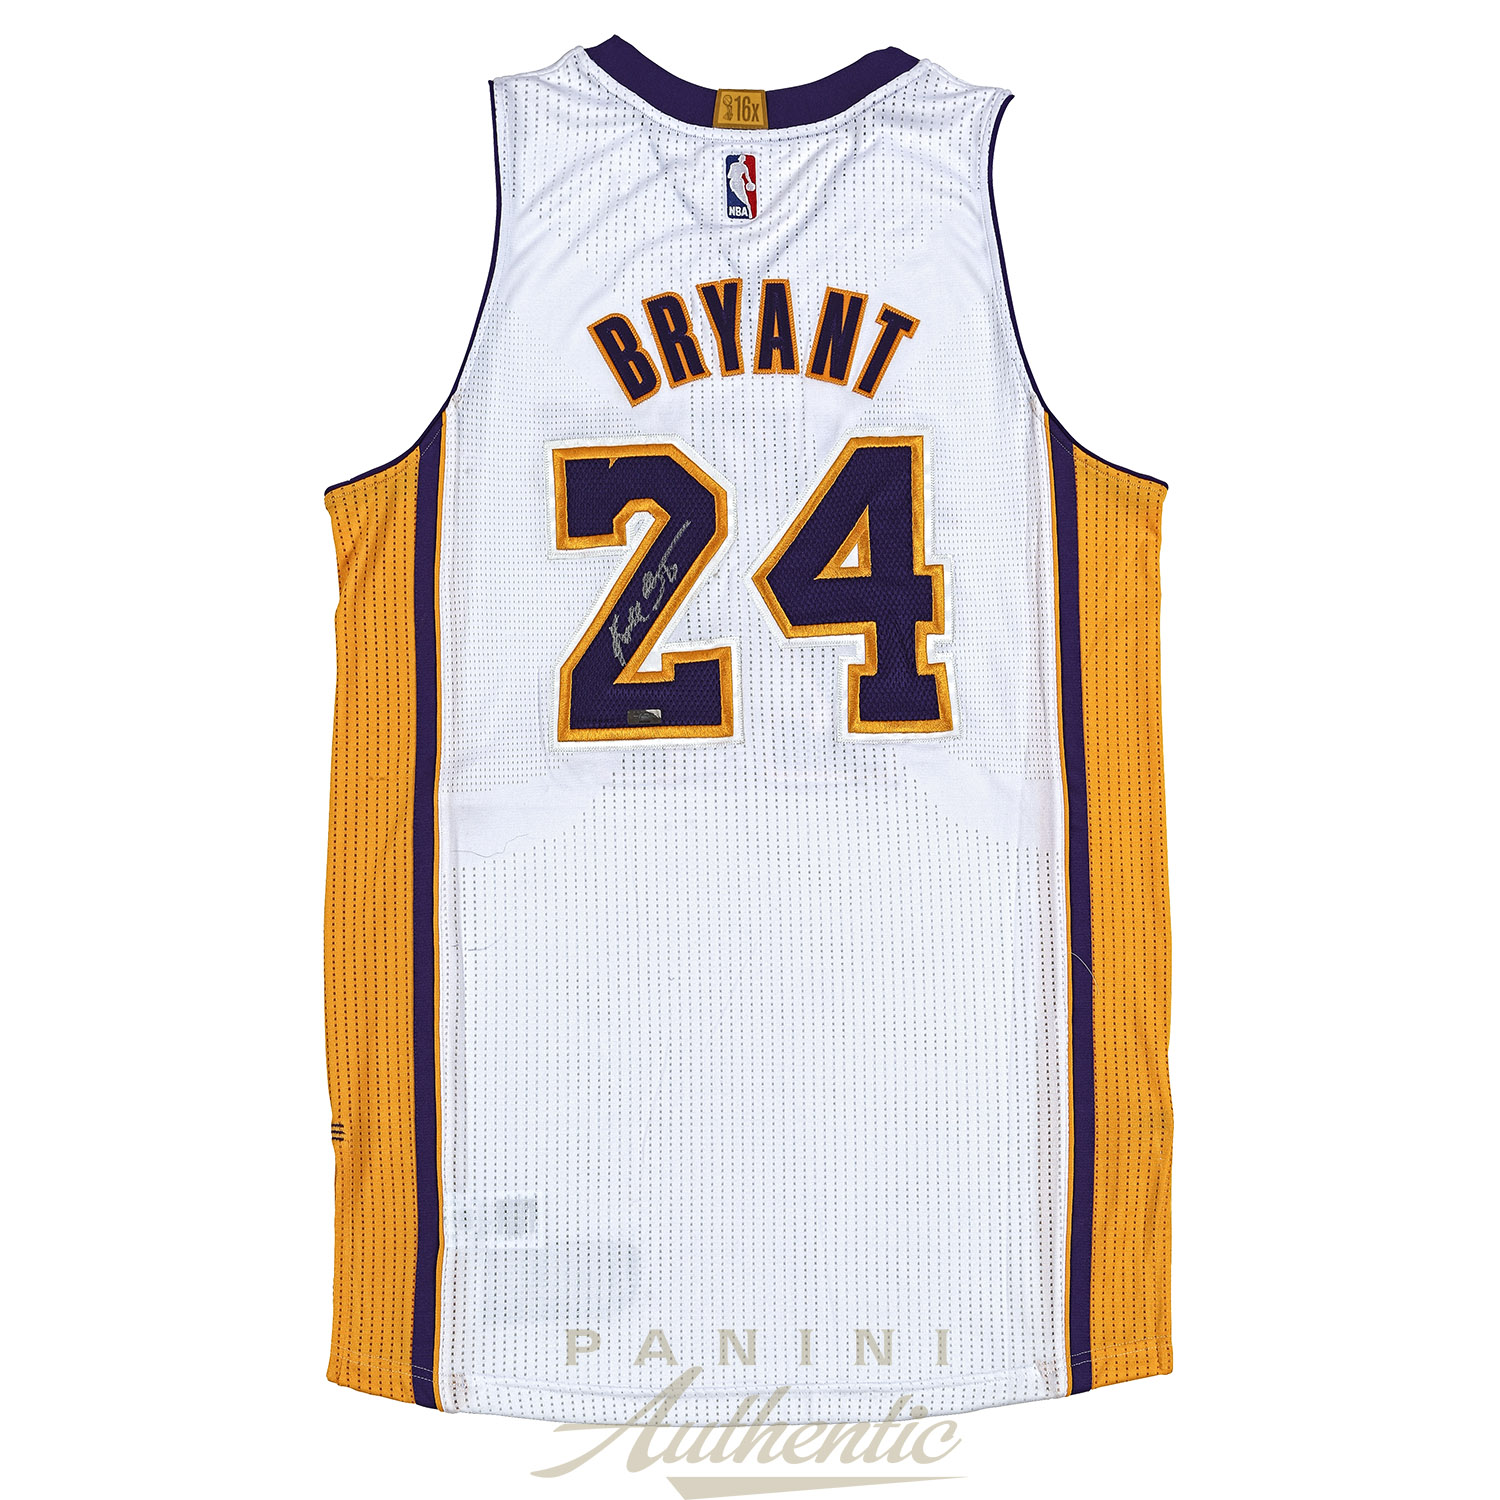 premium selection 935d0 7ff56 Kobe Bryant Autographed Adidas White Authentic Lakers Jersey ...